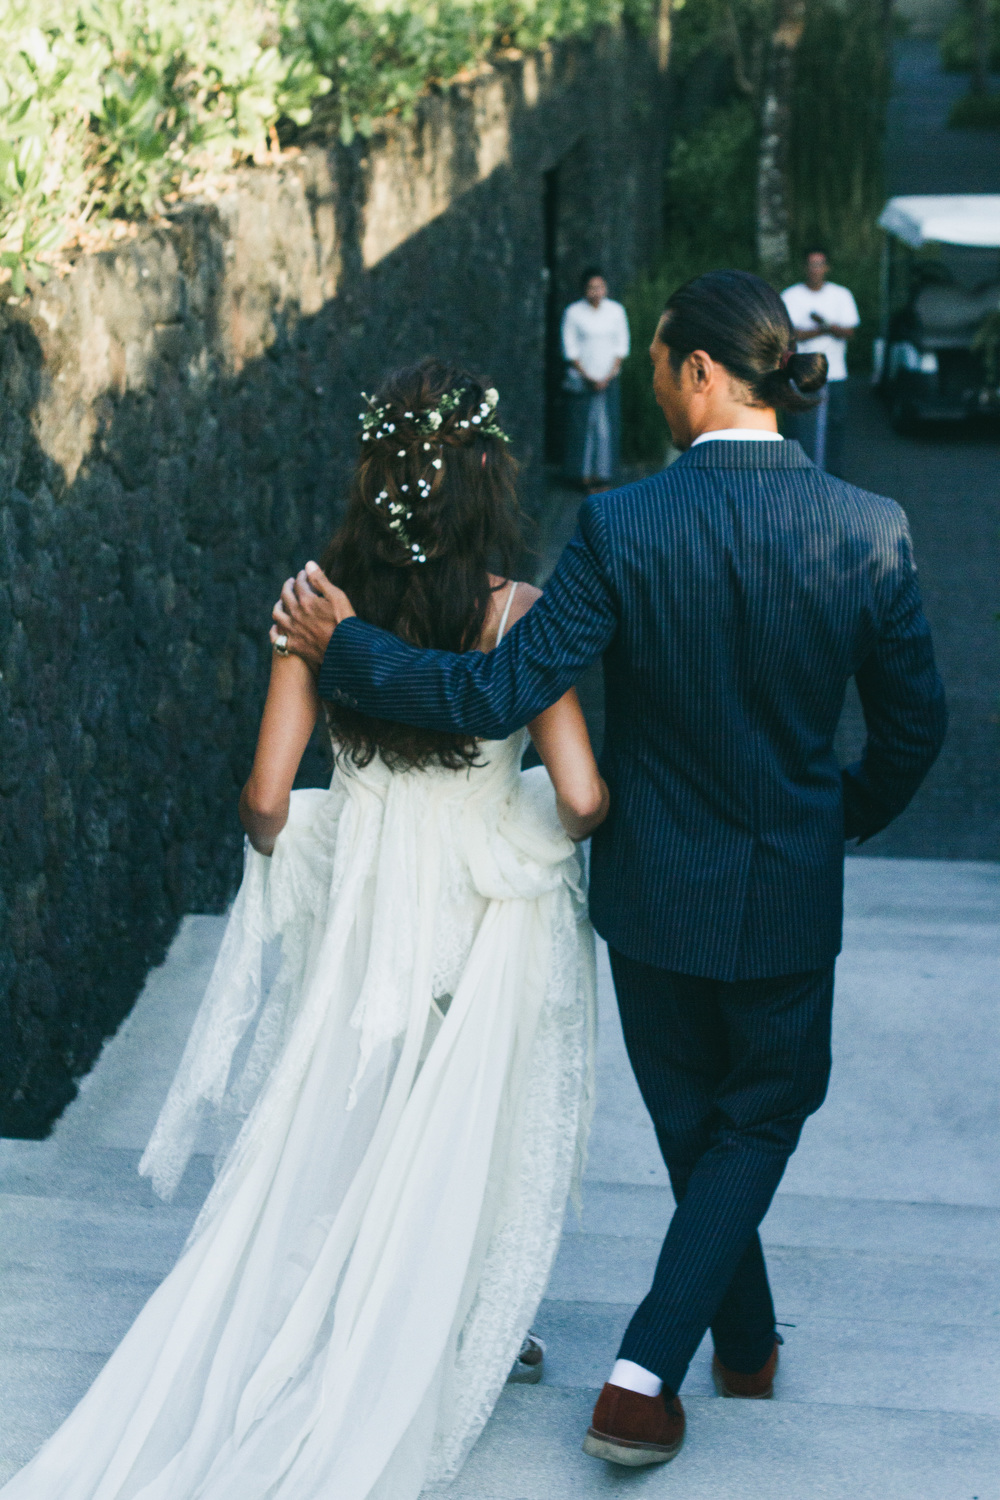 Alice+Susumu_Wedding-98.jpg